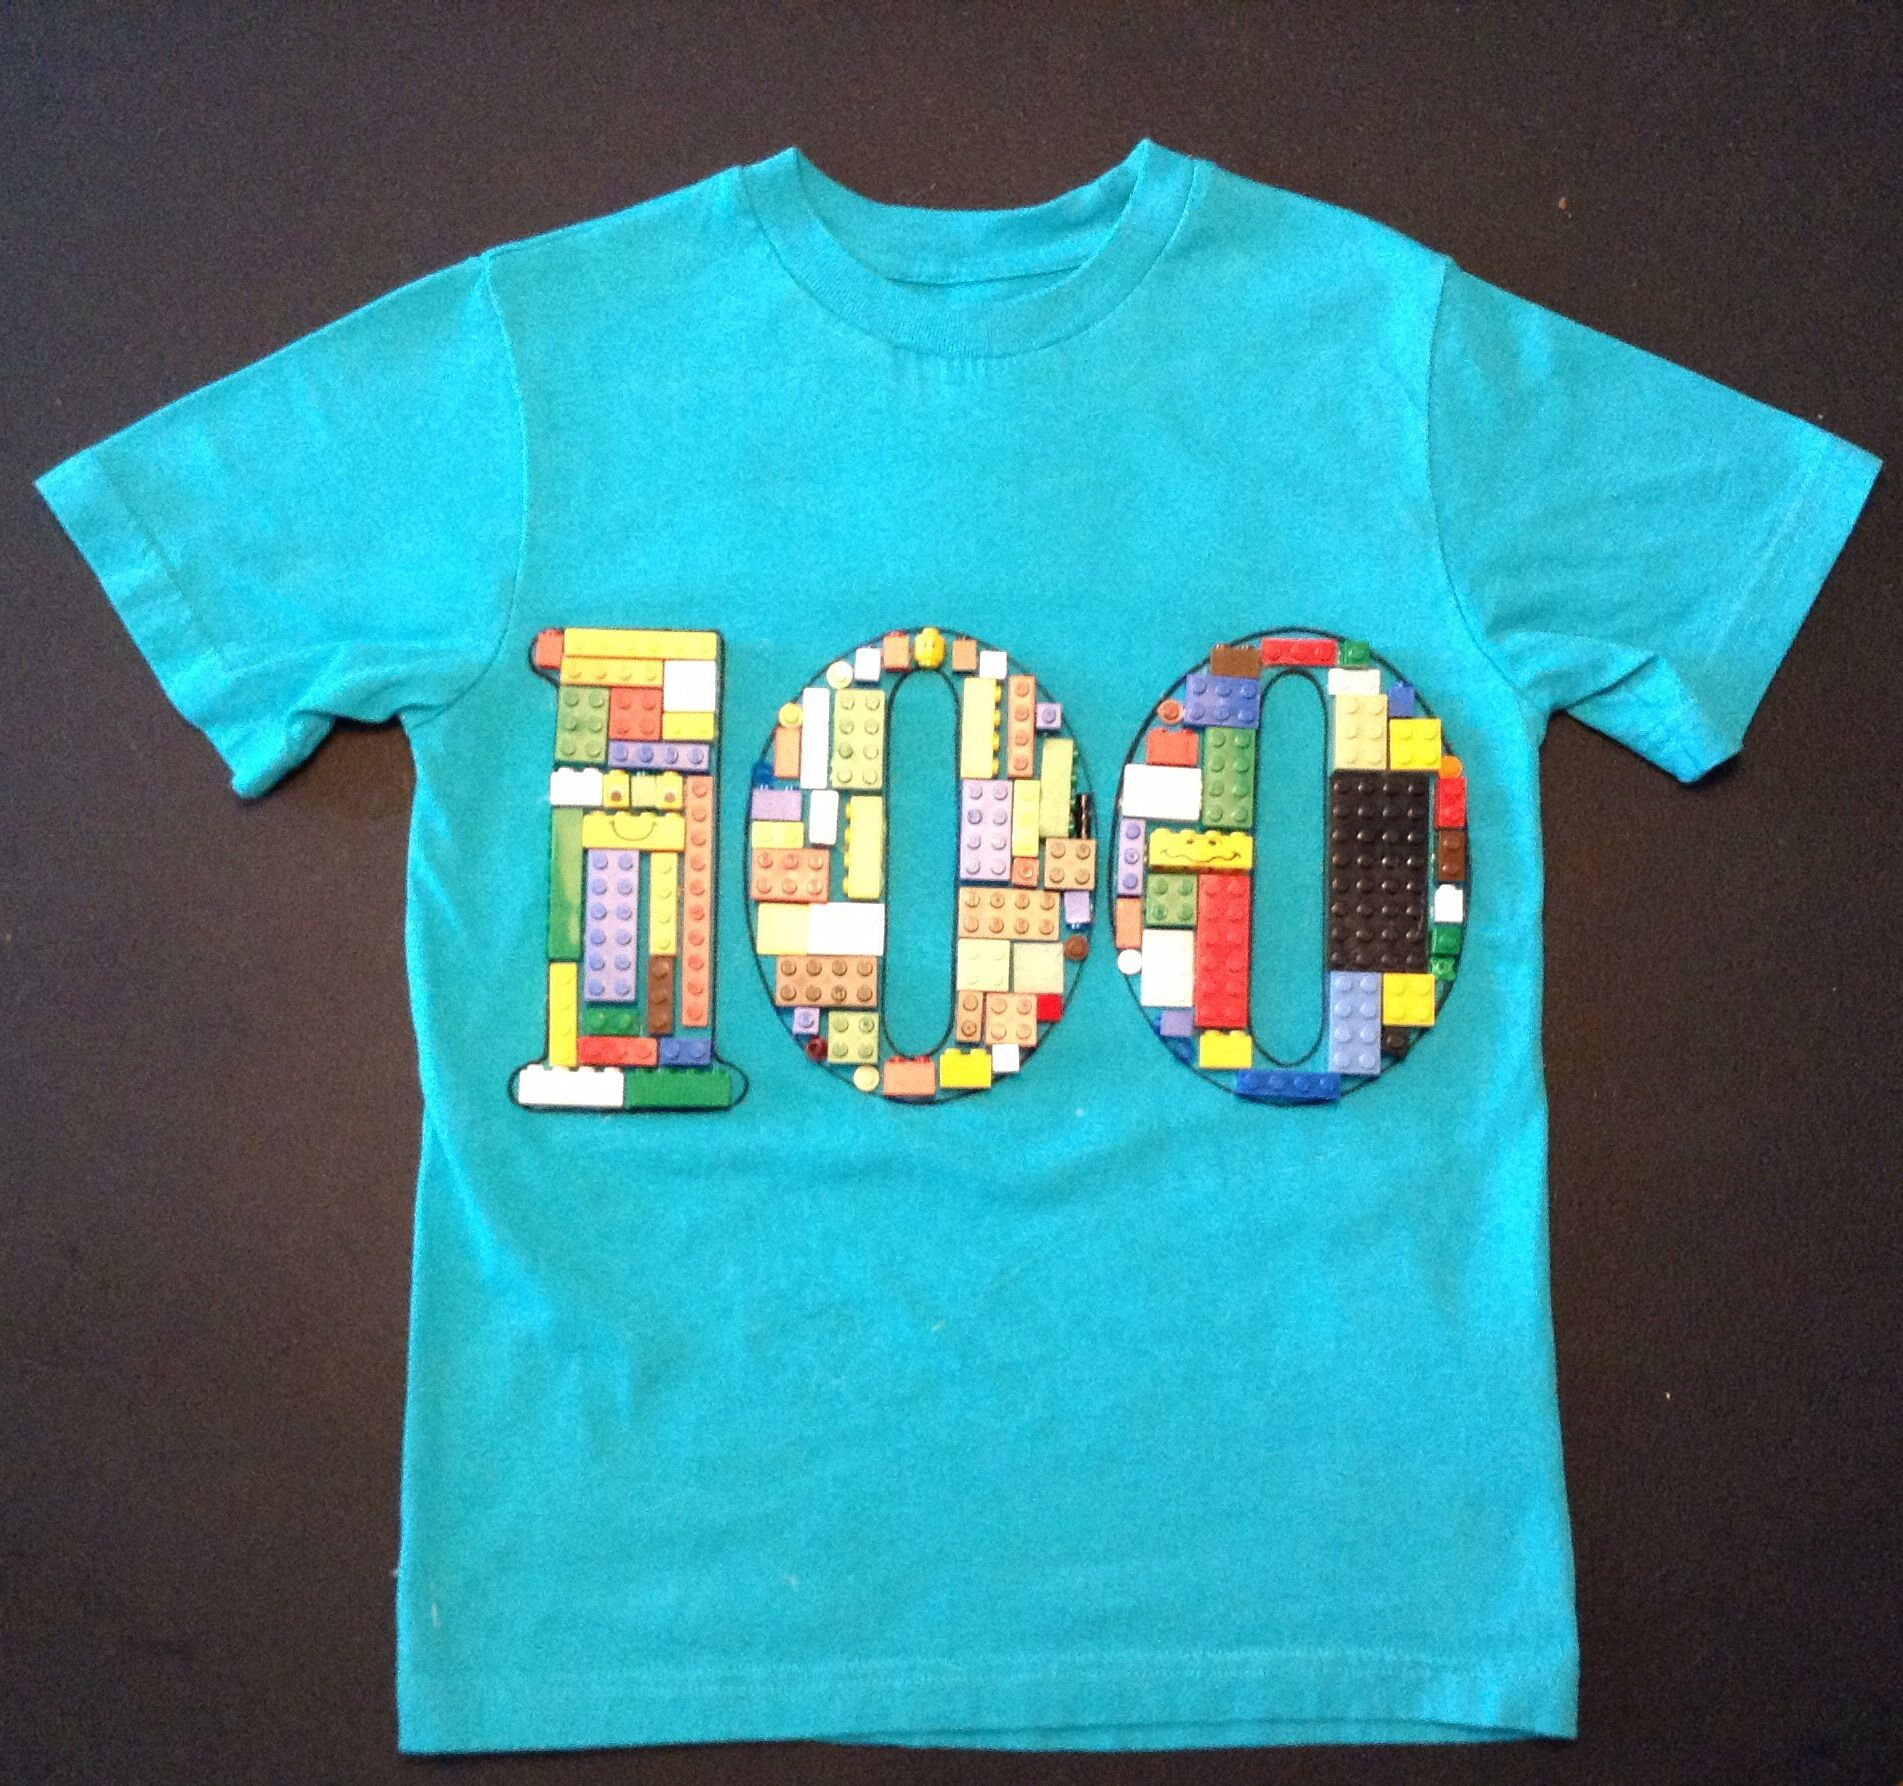 100th Day Of School T Shirt Made Of 100 Legos Glued To Shirt